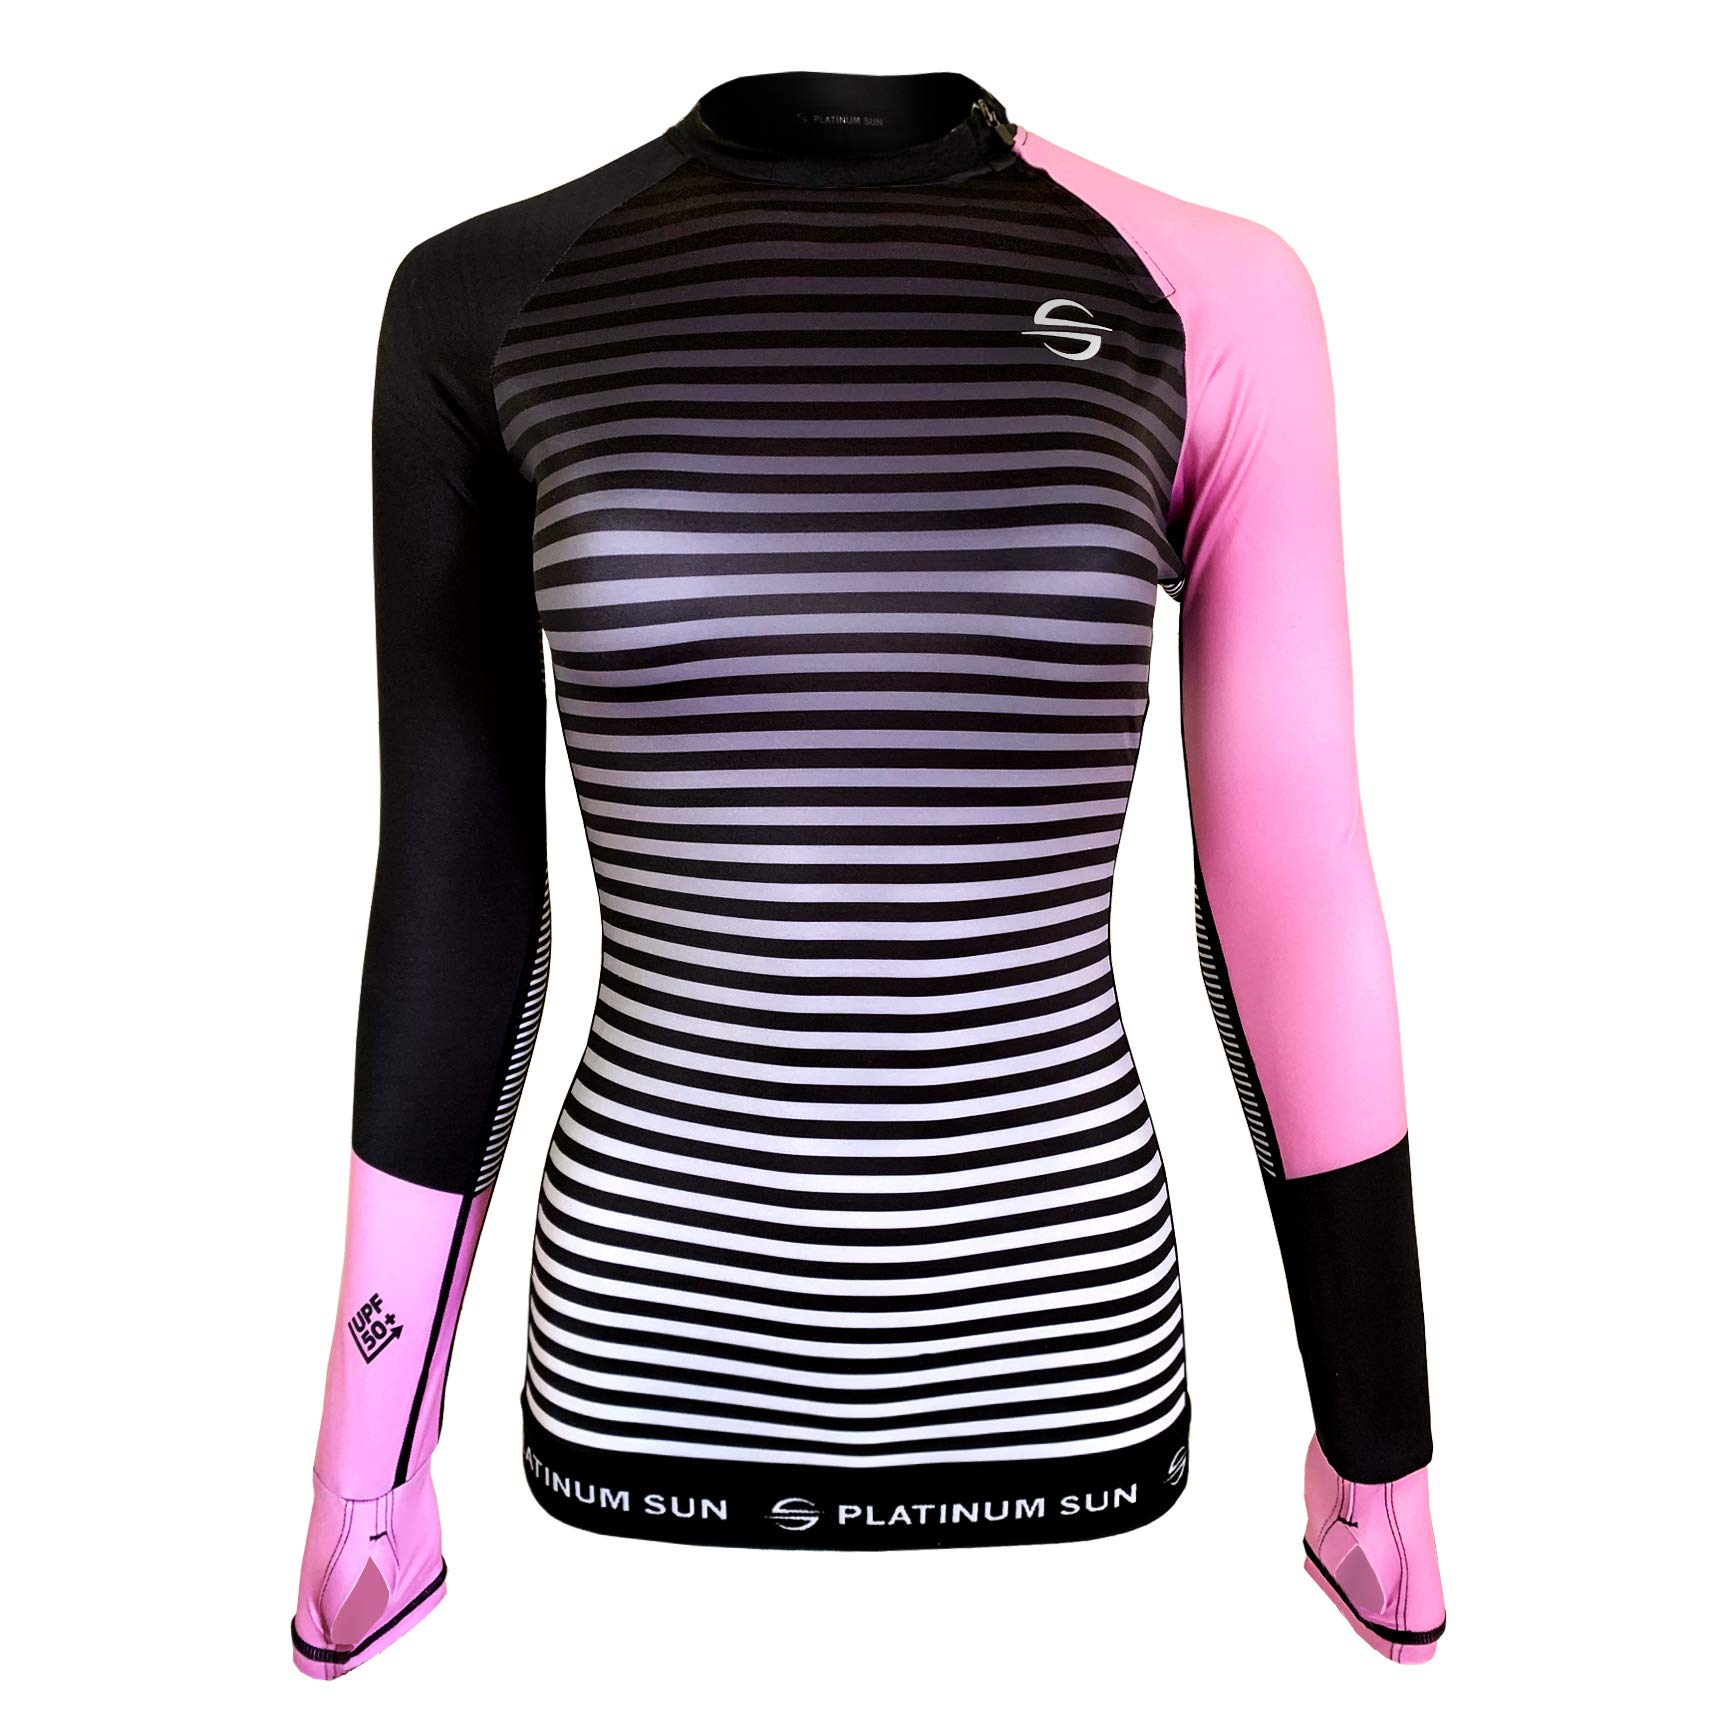 Women's Rash Guard Swim Shirt Long Sleeve Swimsuit Top Bathing Swimming Shirts - Sun Protection Clothing UPF 50+ (Pink-Stripes, L) by Platinum Sun